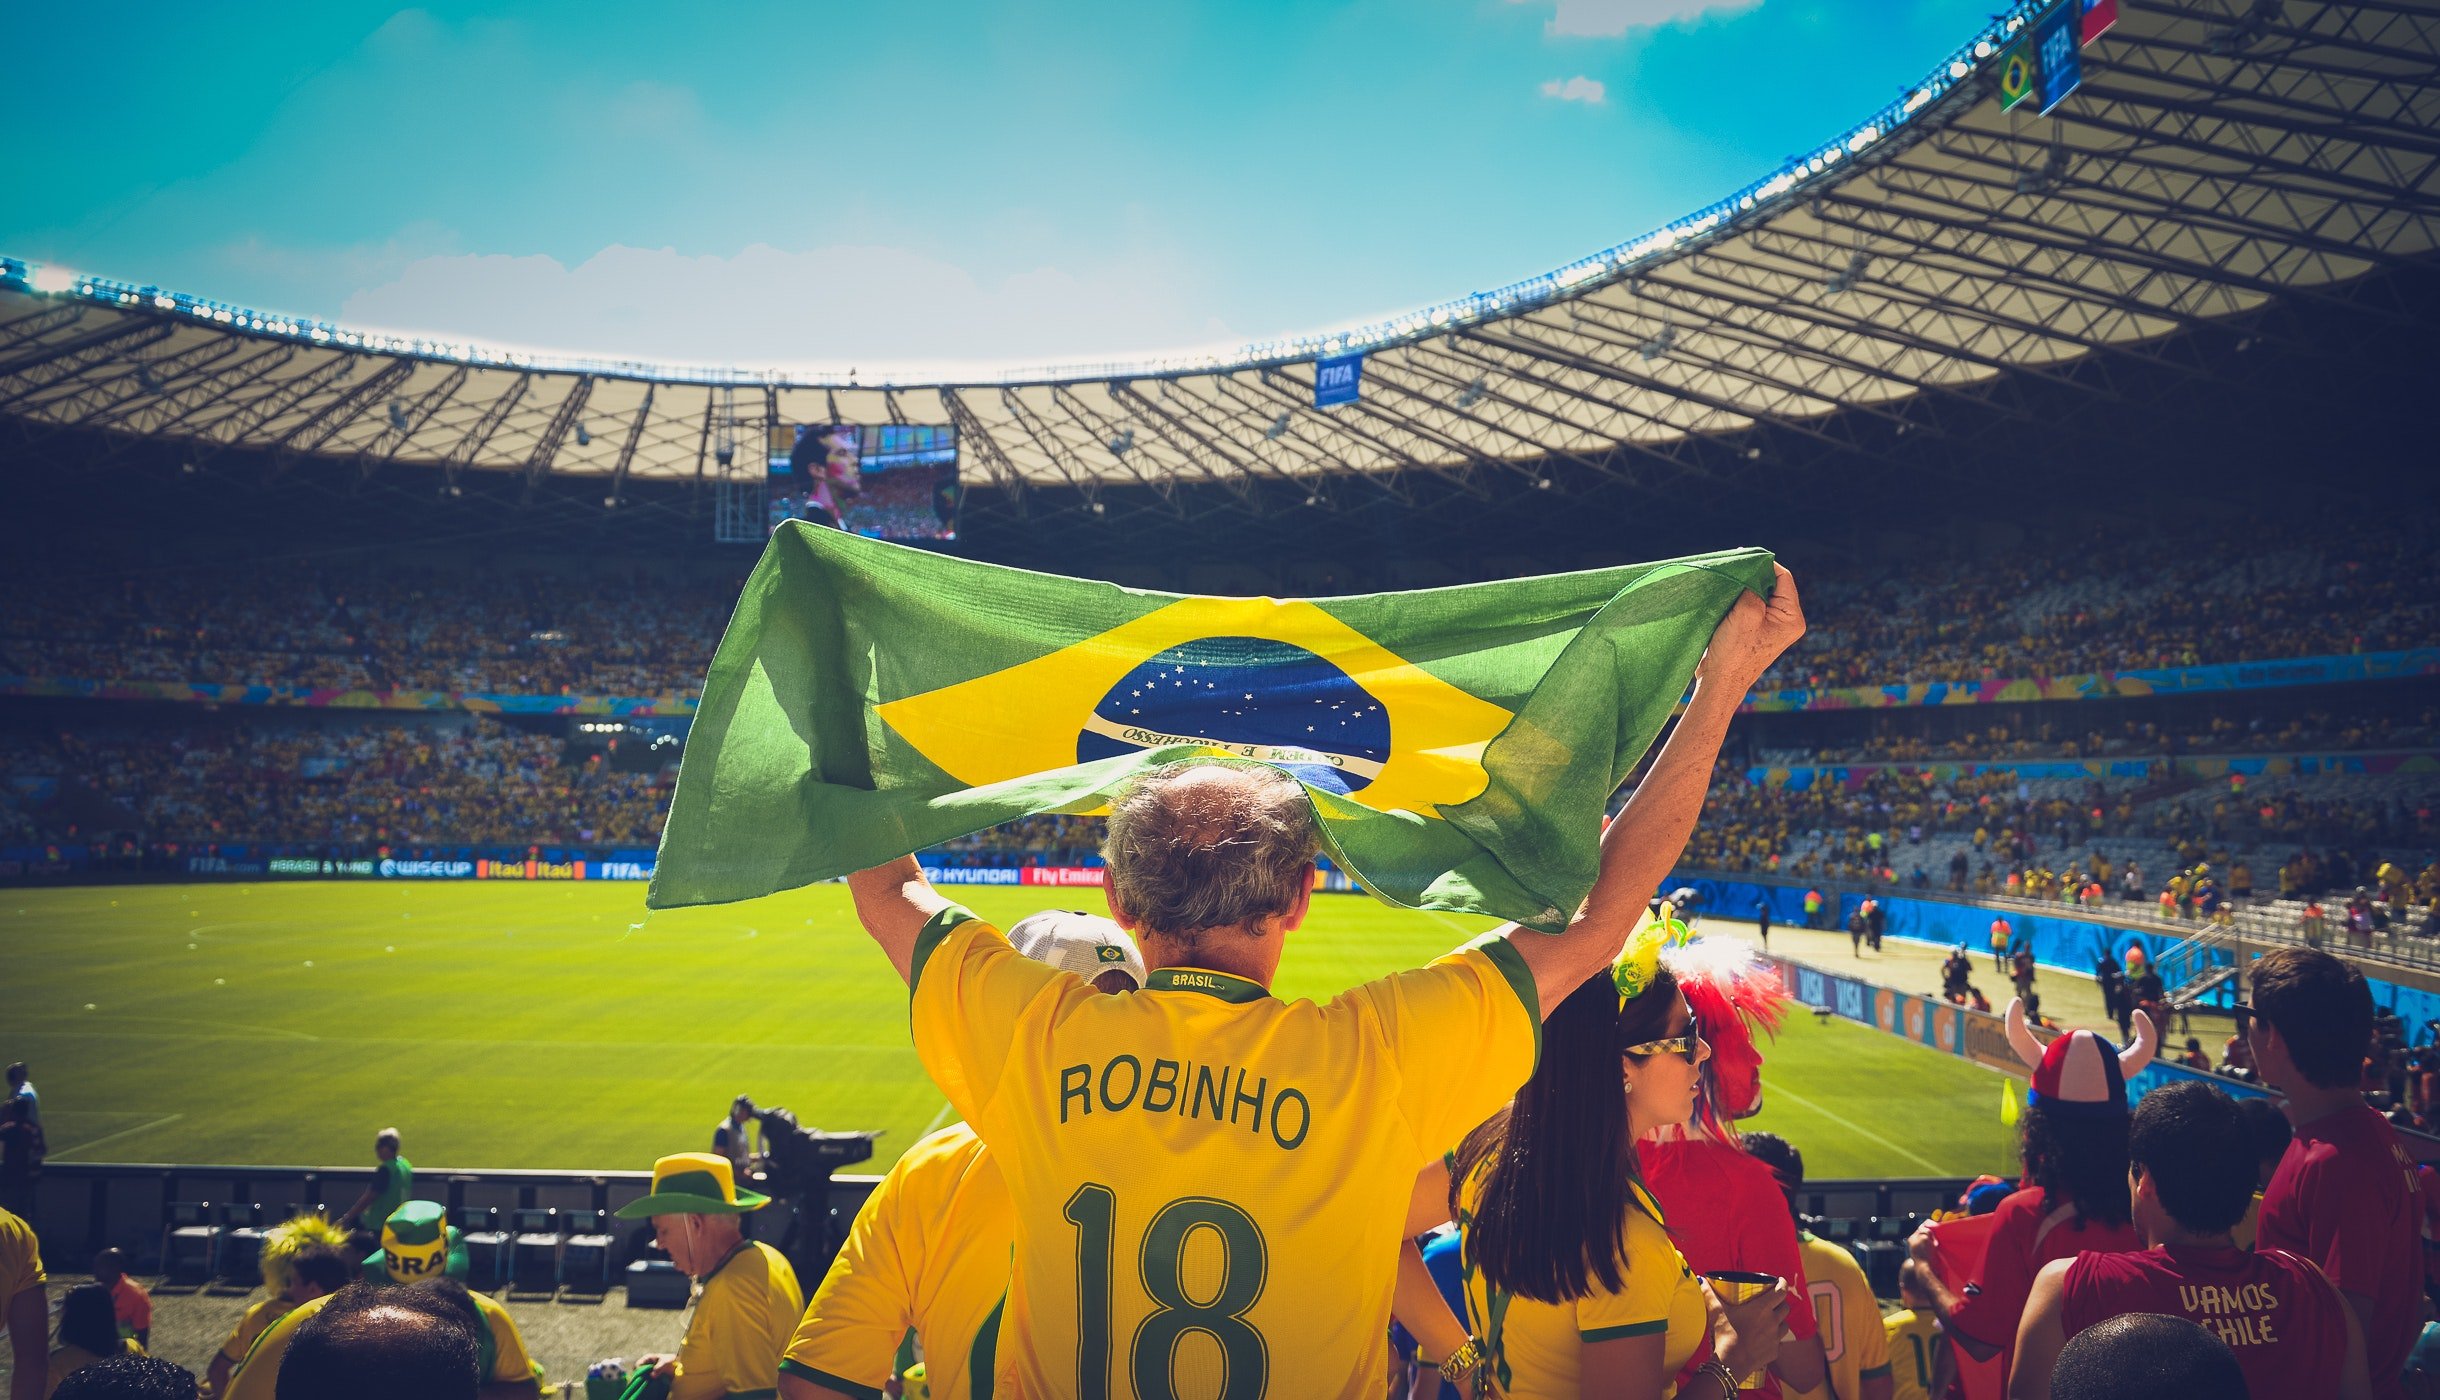 Photo of People are cheering for the Brazilian team